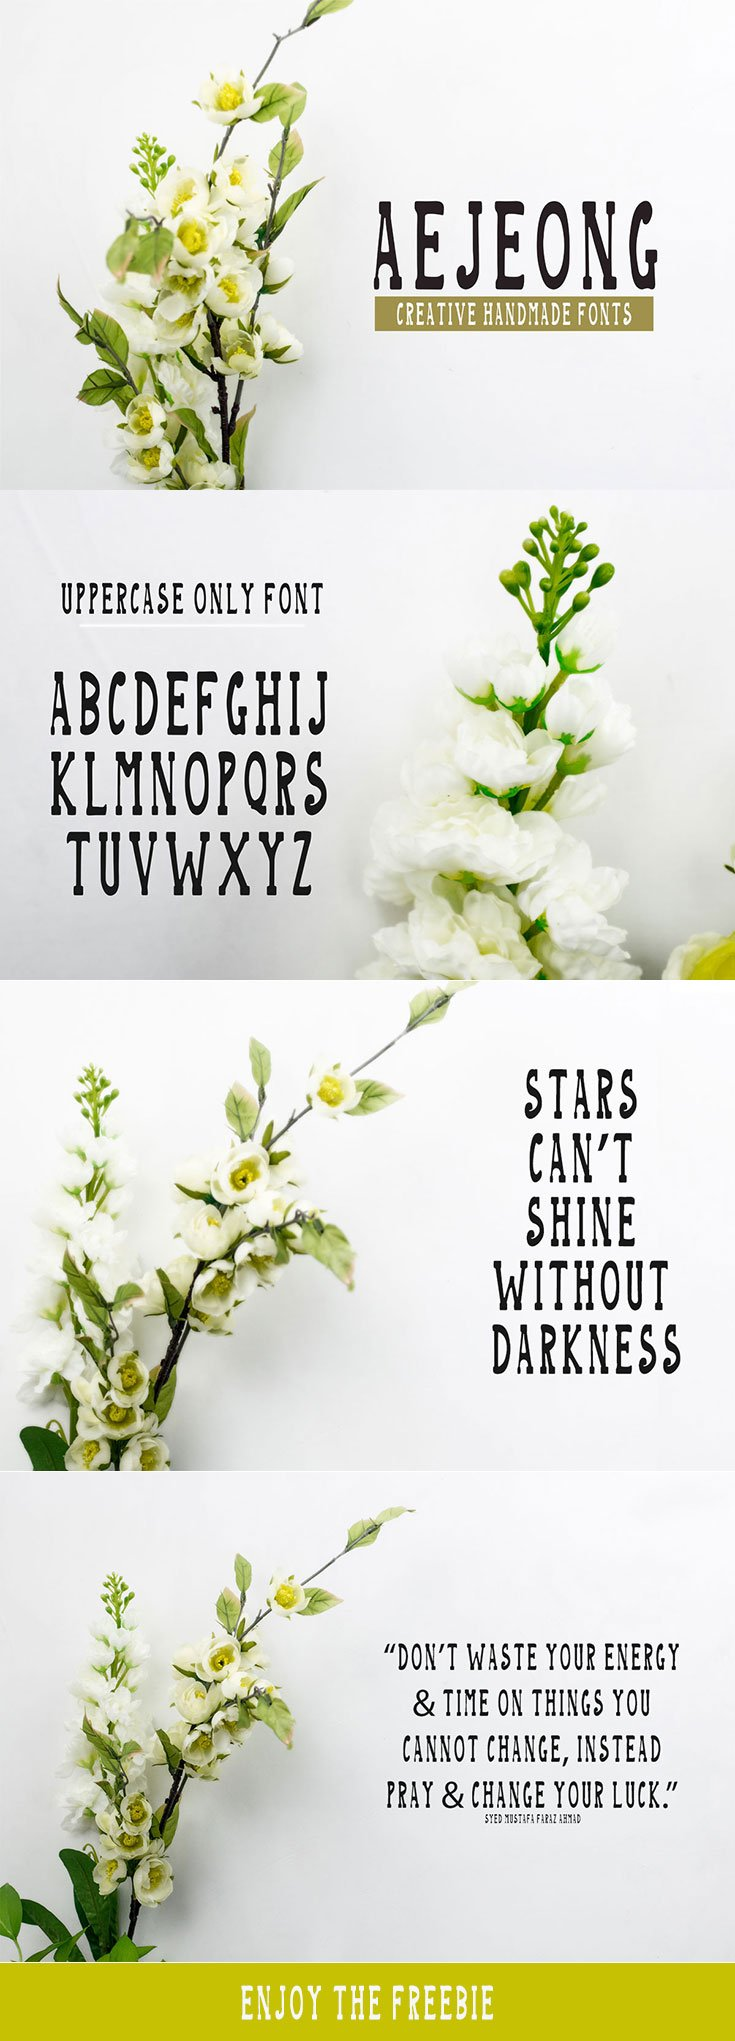 Free Aejeong Hand Made Font